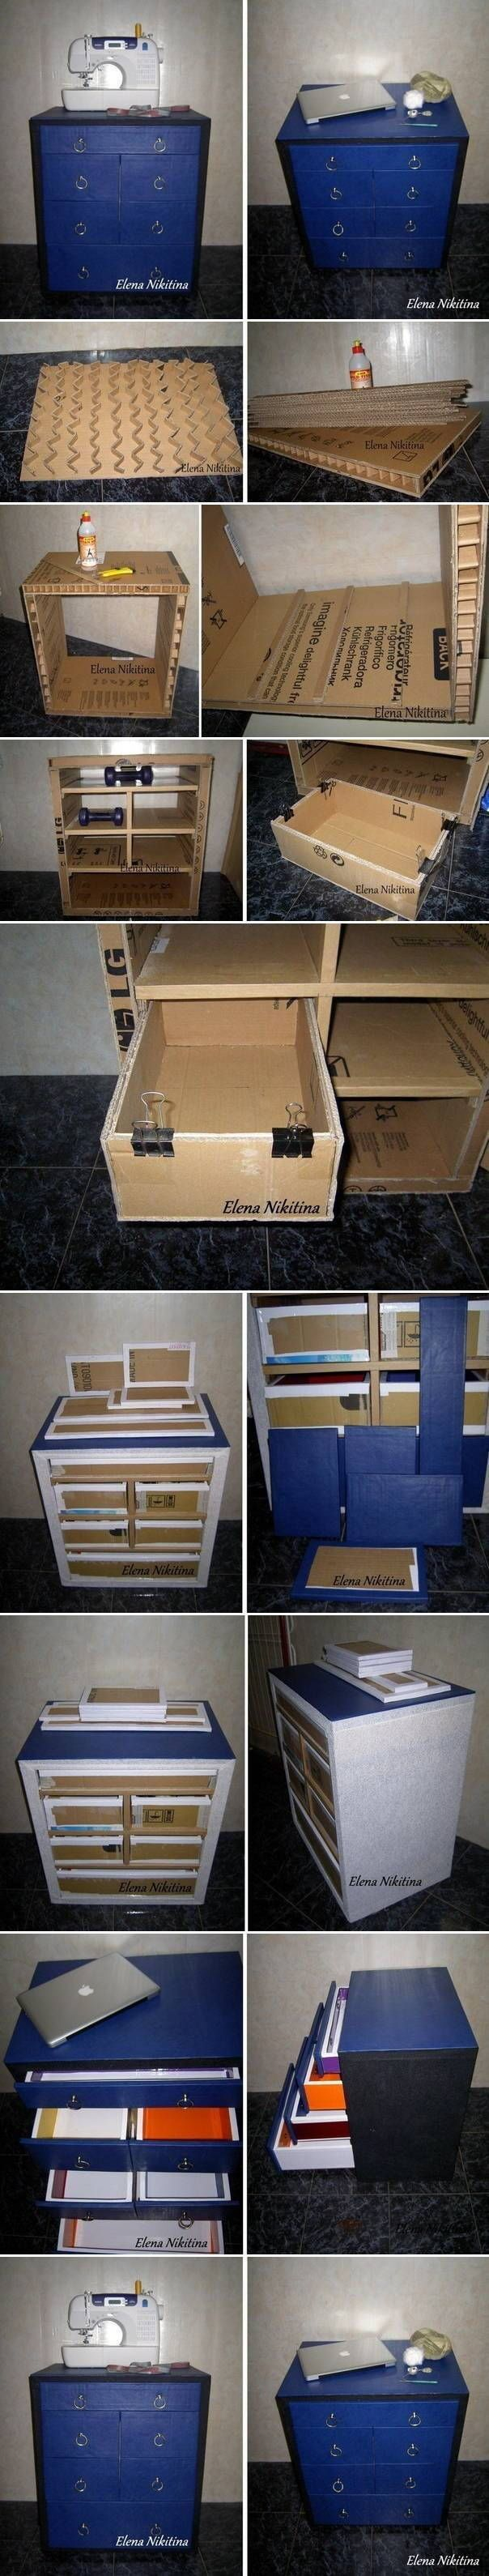 DIY Cardboard Chest with Drawers diy craft crafts diy ideas how to tutorial home crafts craft furniture